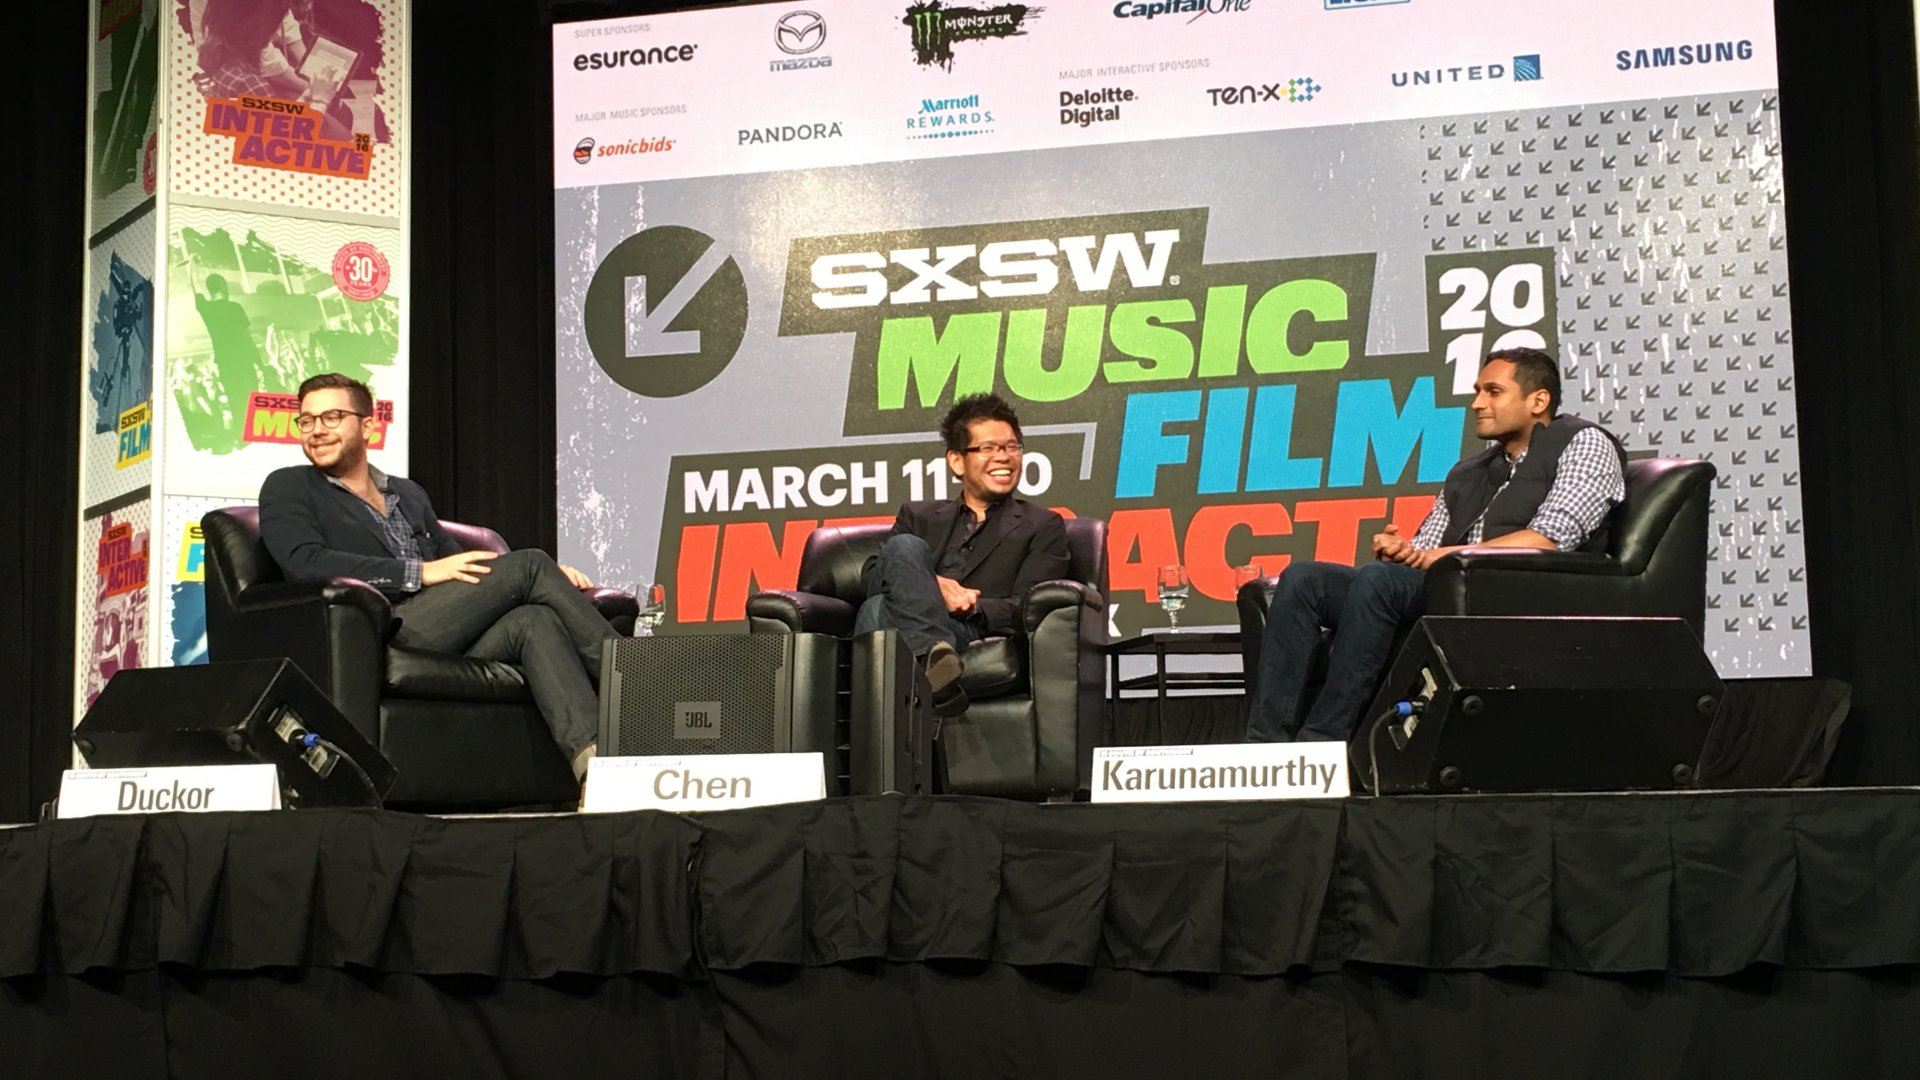 YouTube co-founder Steve Chen and former YouTube lead engineer Vijay Karunamurthy discuss their new startup, Nom, at SXSW.